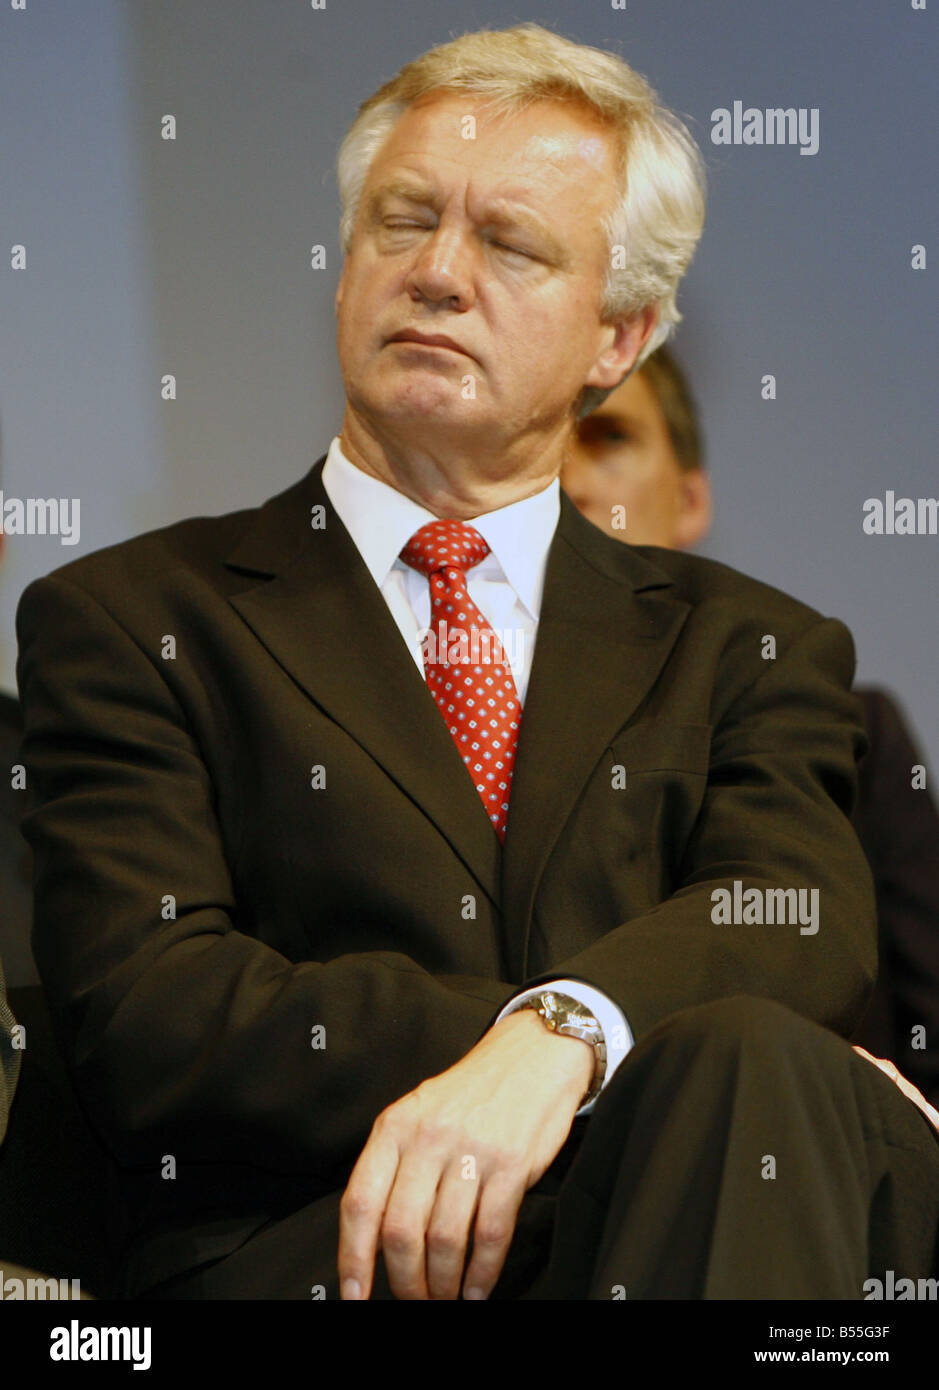 David Davis snoozes during Tory leader David Cameron s speech to delegates at 2007 Conservative Party Conference - Stock Image